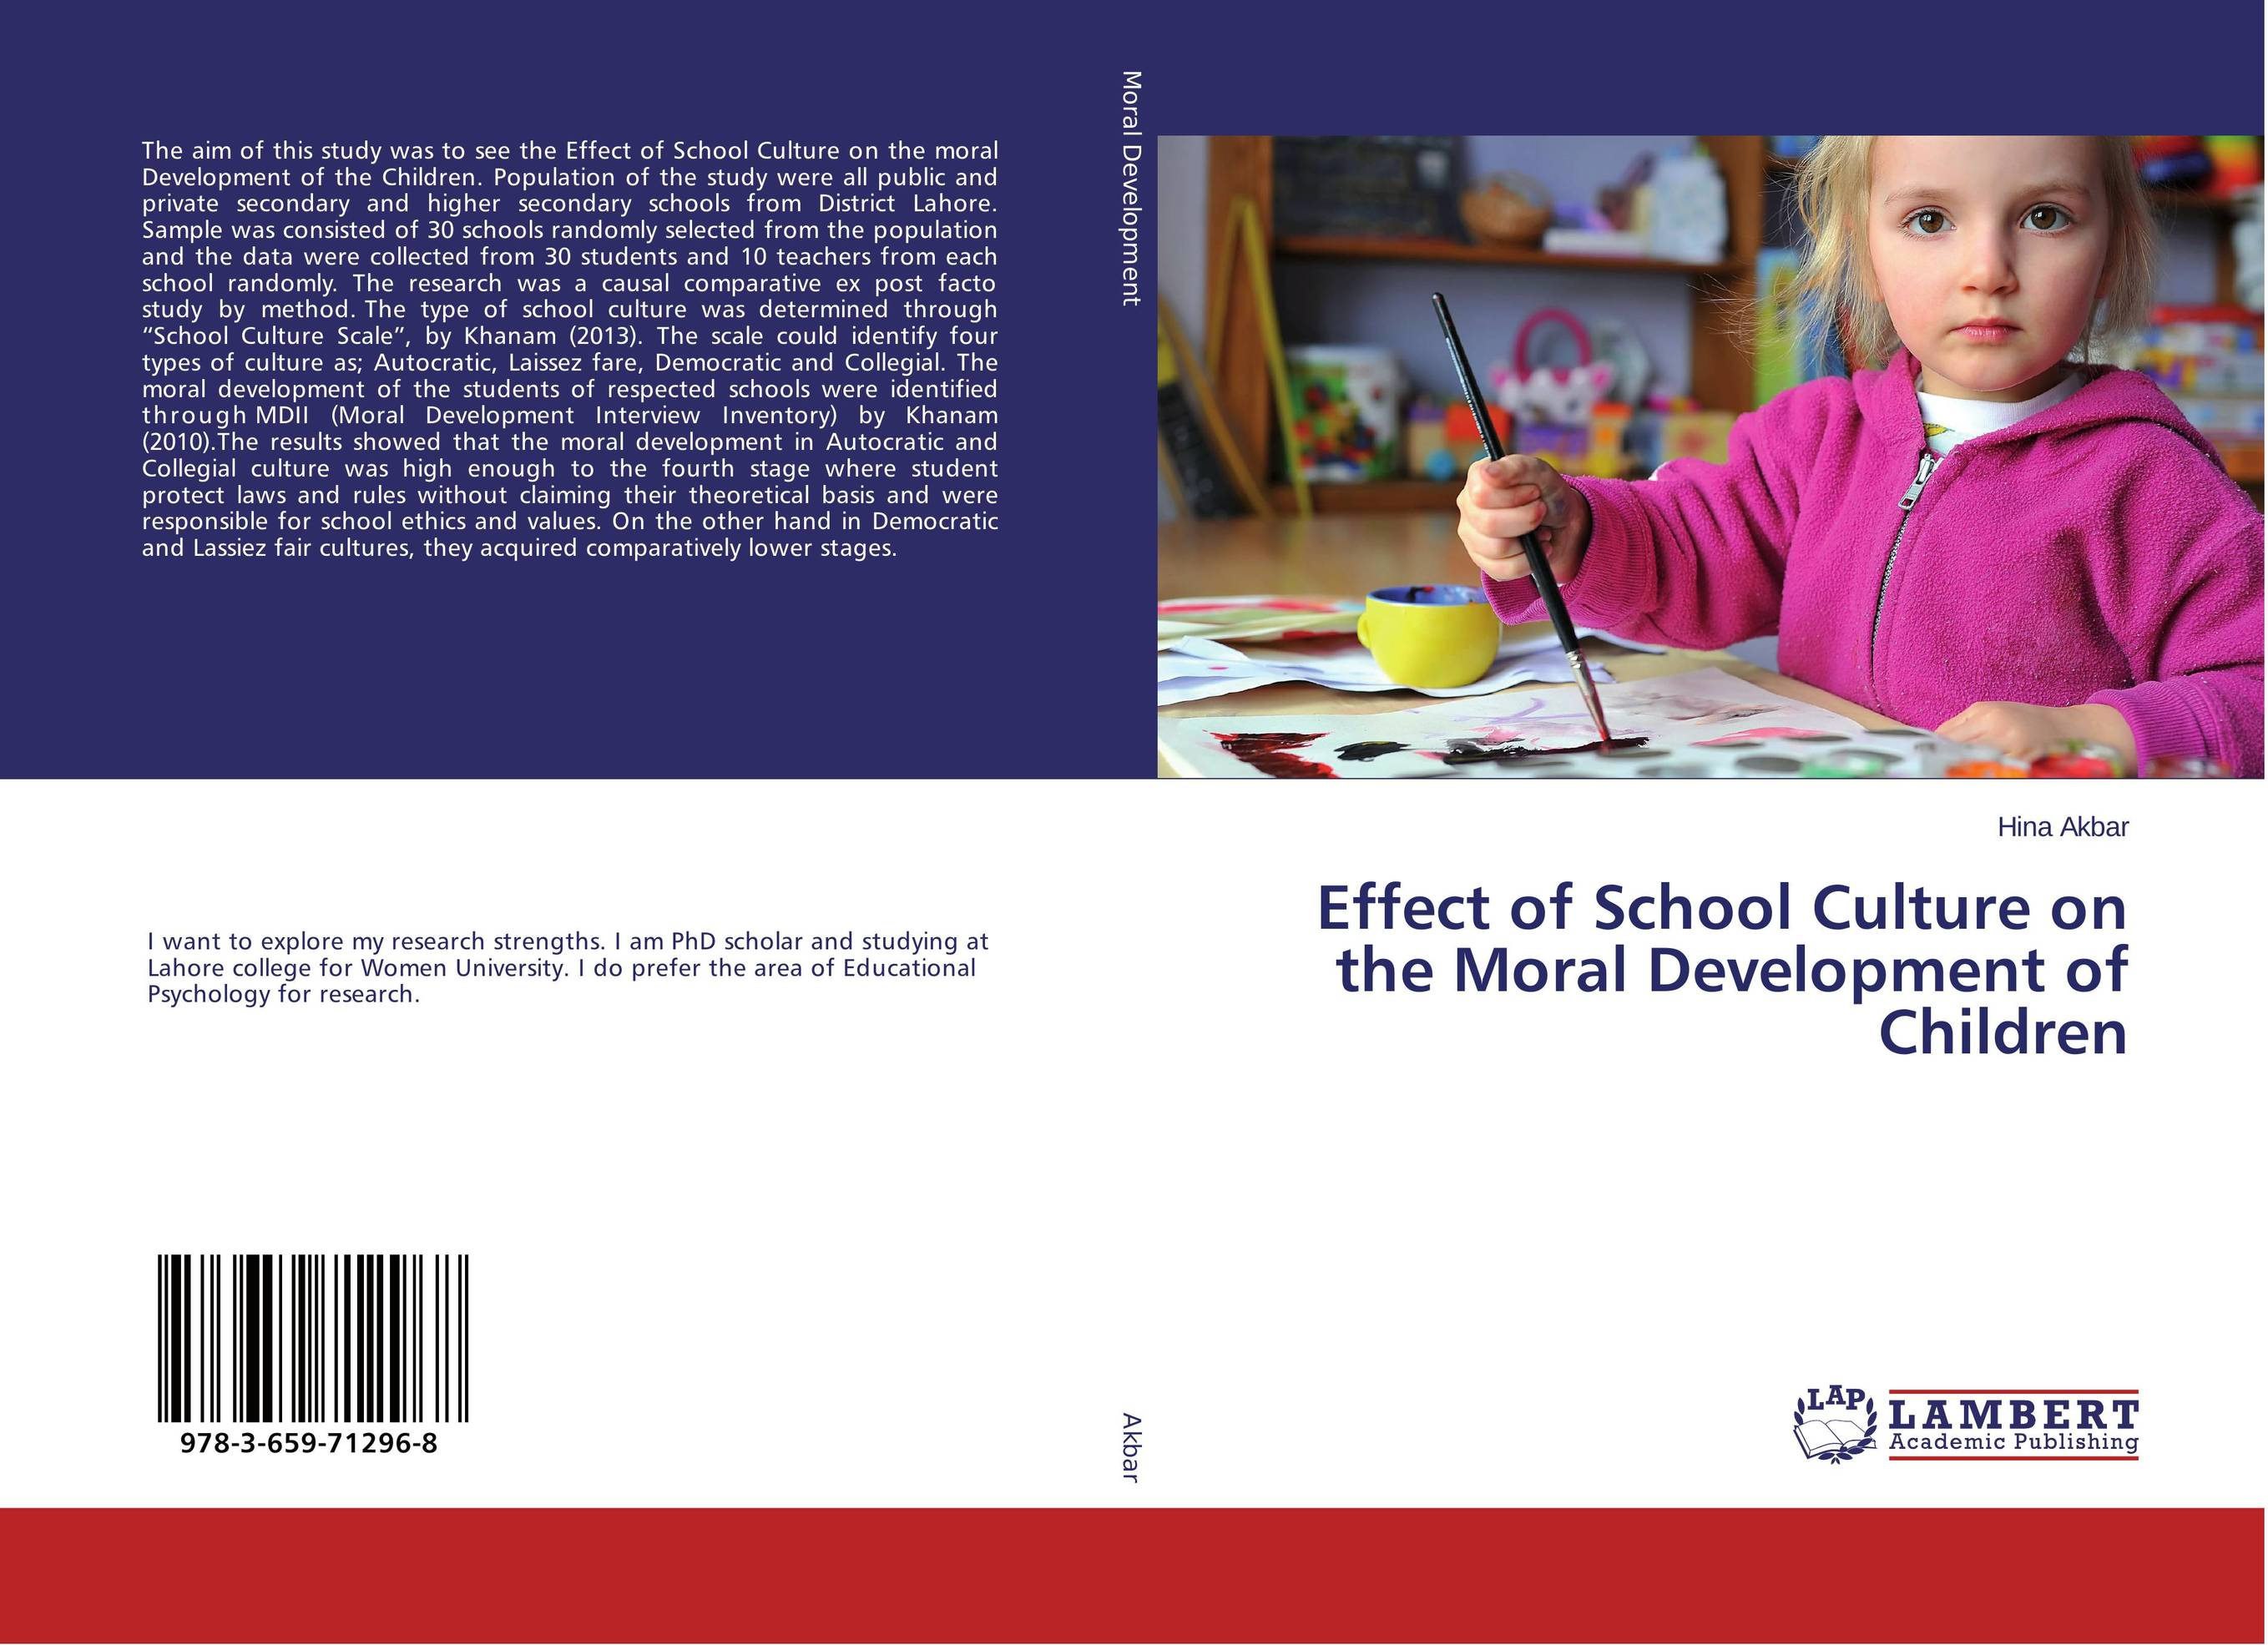 Effect of School Culture on the Moral Development of Children role of school leadership in promoting moral integrity among students